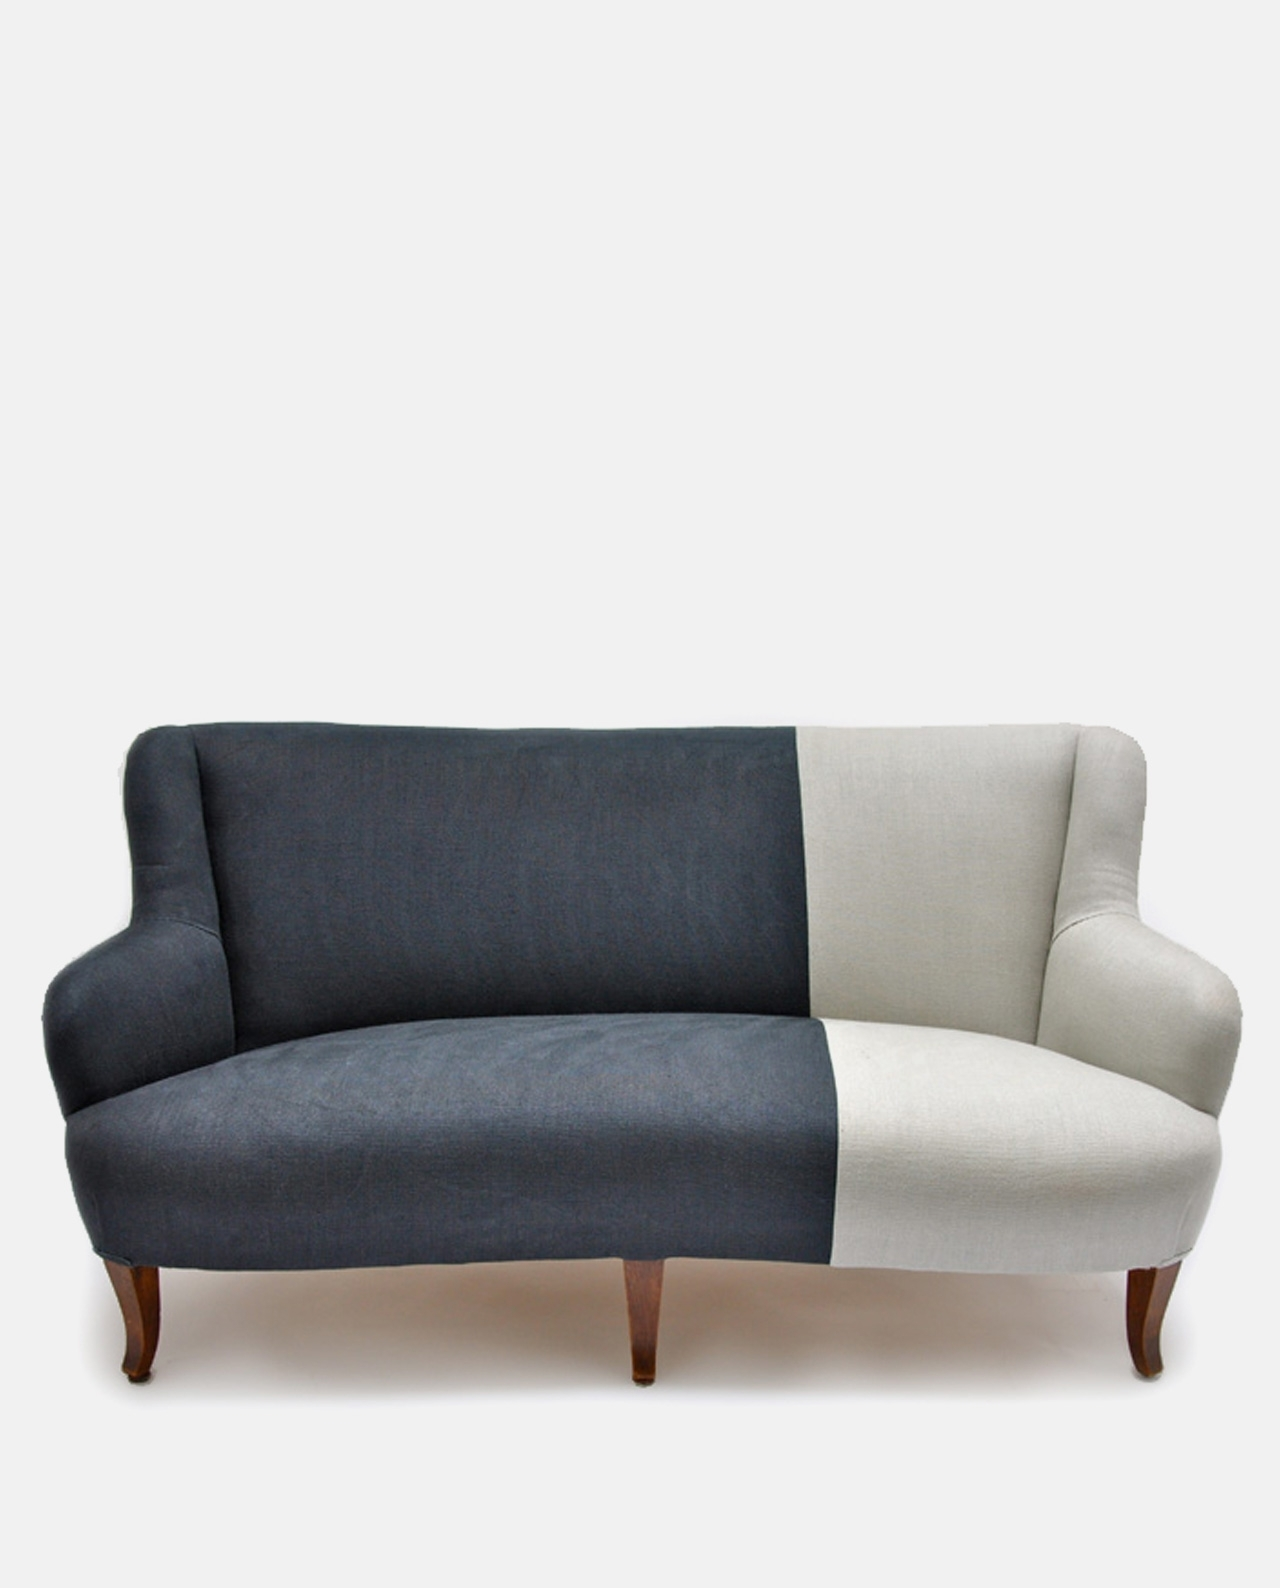 Vintage Two Tone Sofa Designers Guild Linen | Ines Cole Intended For Vintage Sofas (View 3 of 10)